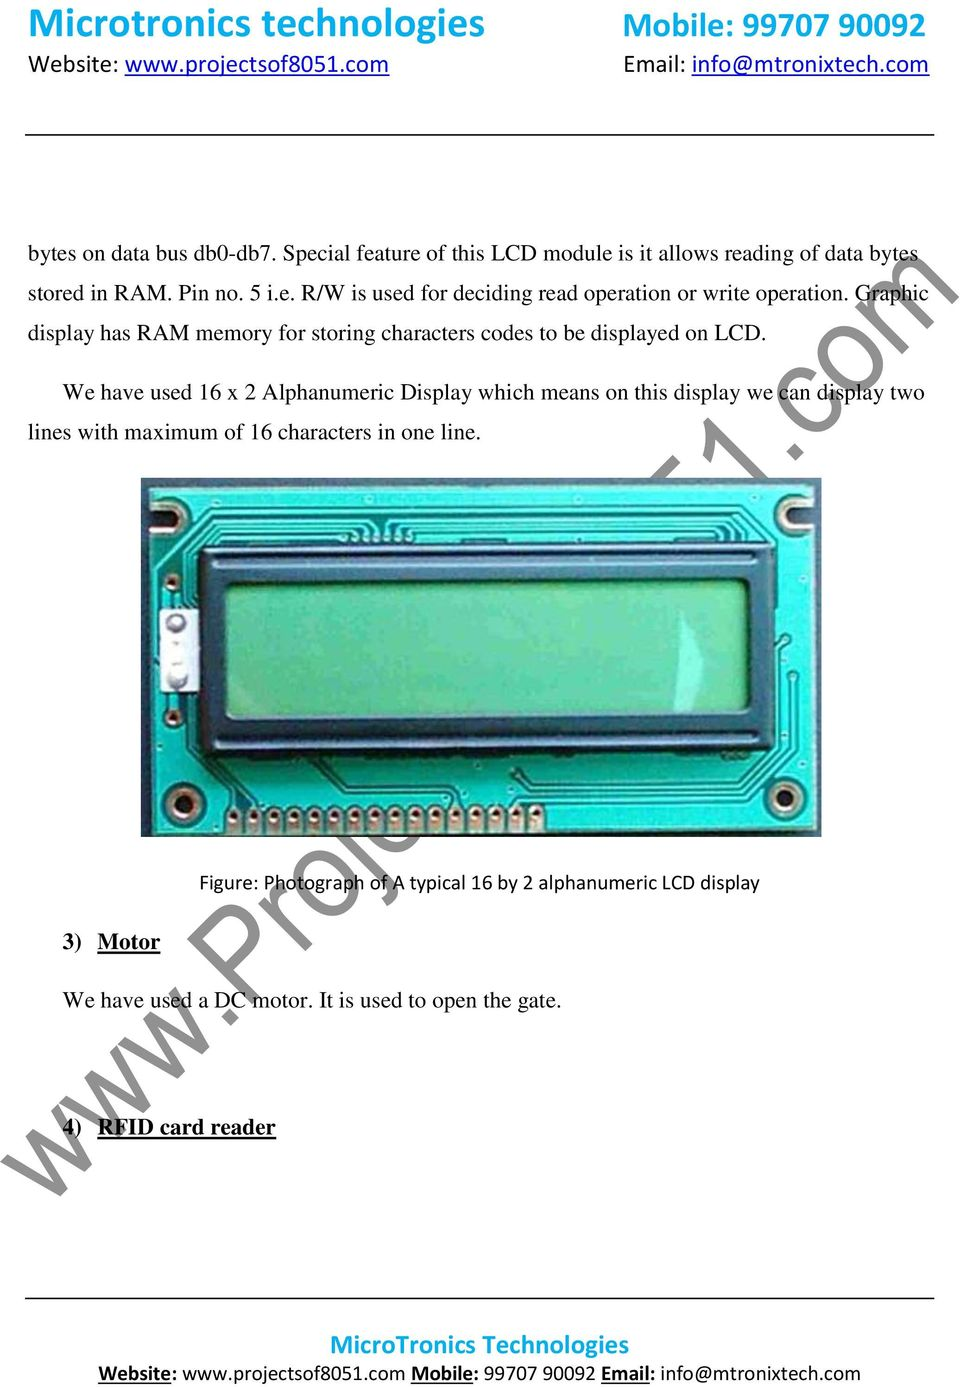 We have used 16 x 2 Alphanumeric Display which means on this display we can display two lines with maximum of 16 characters in one line.